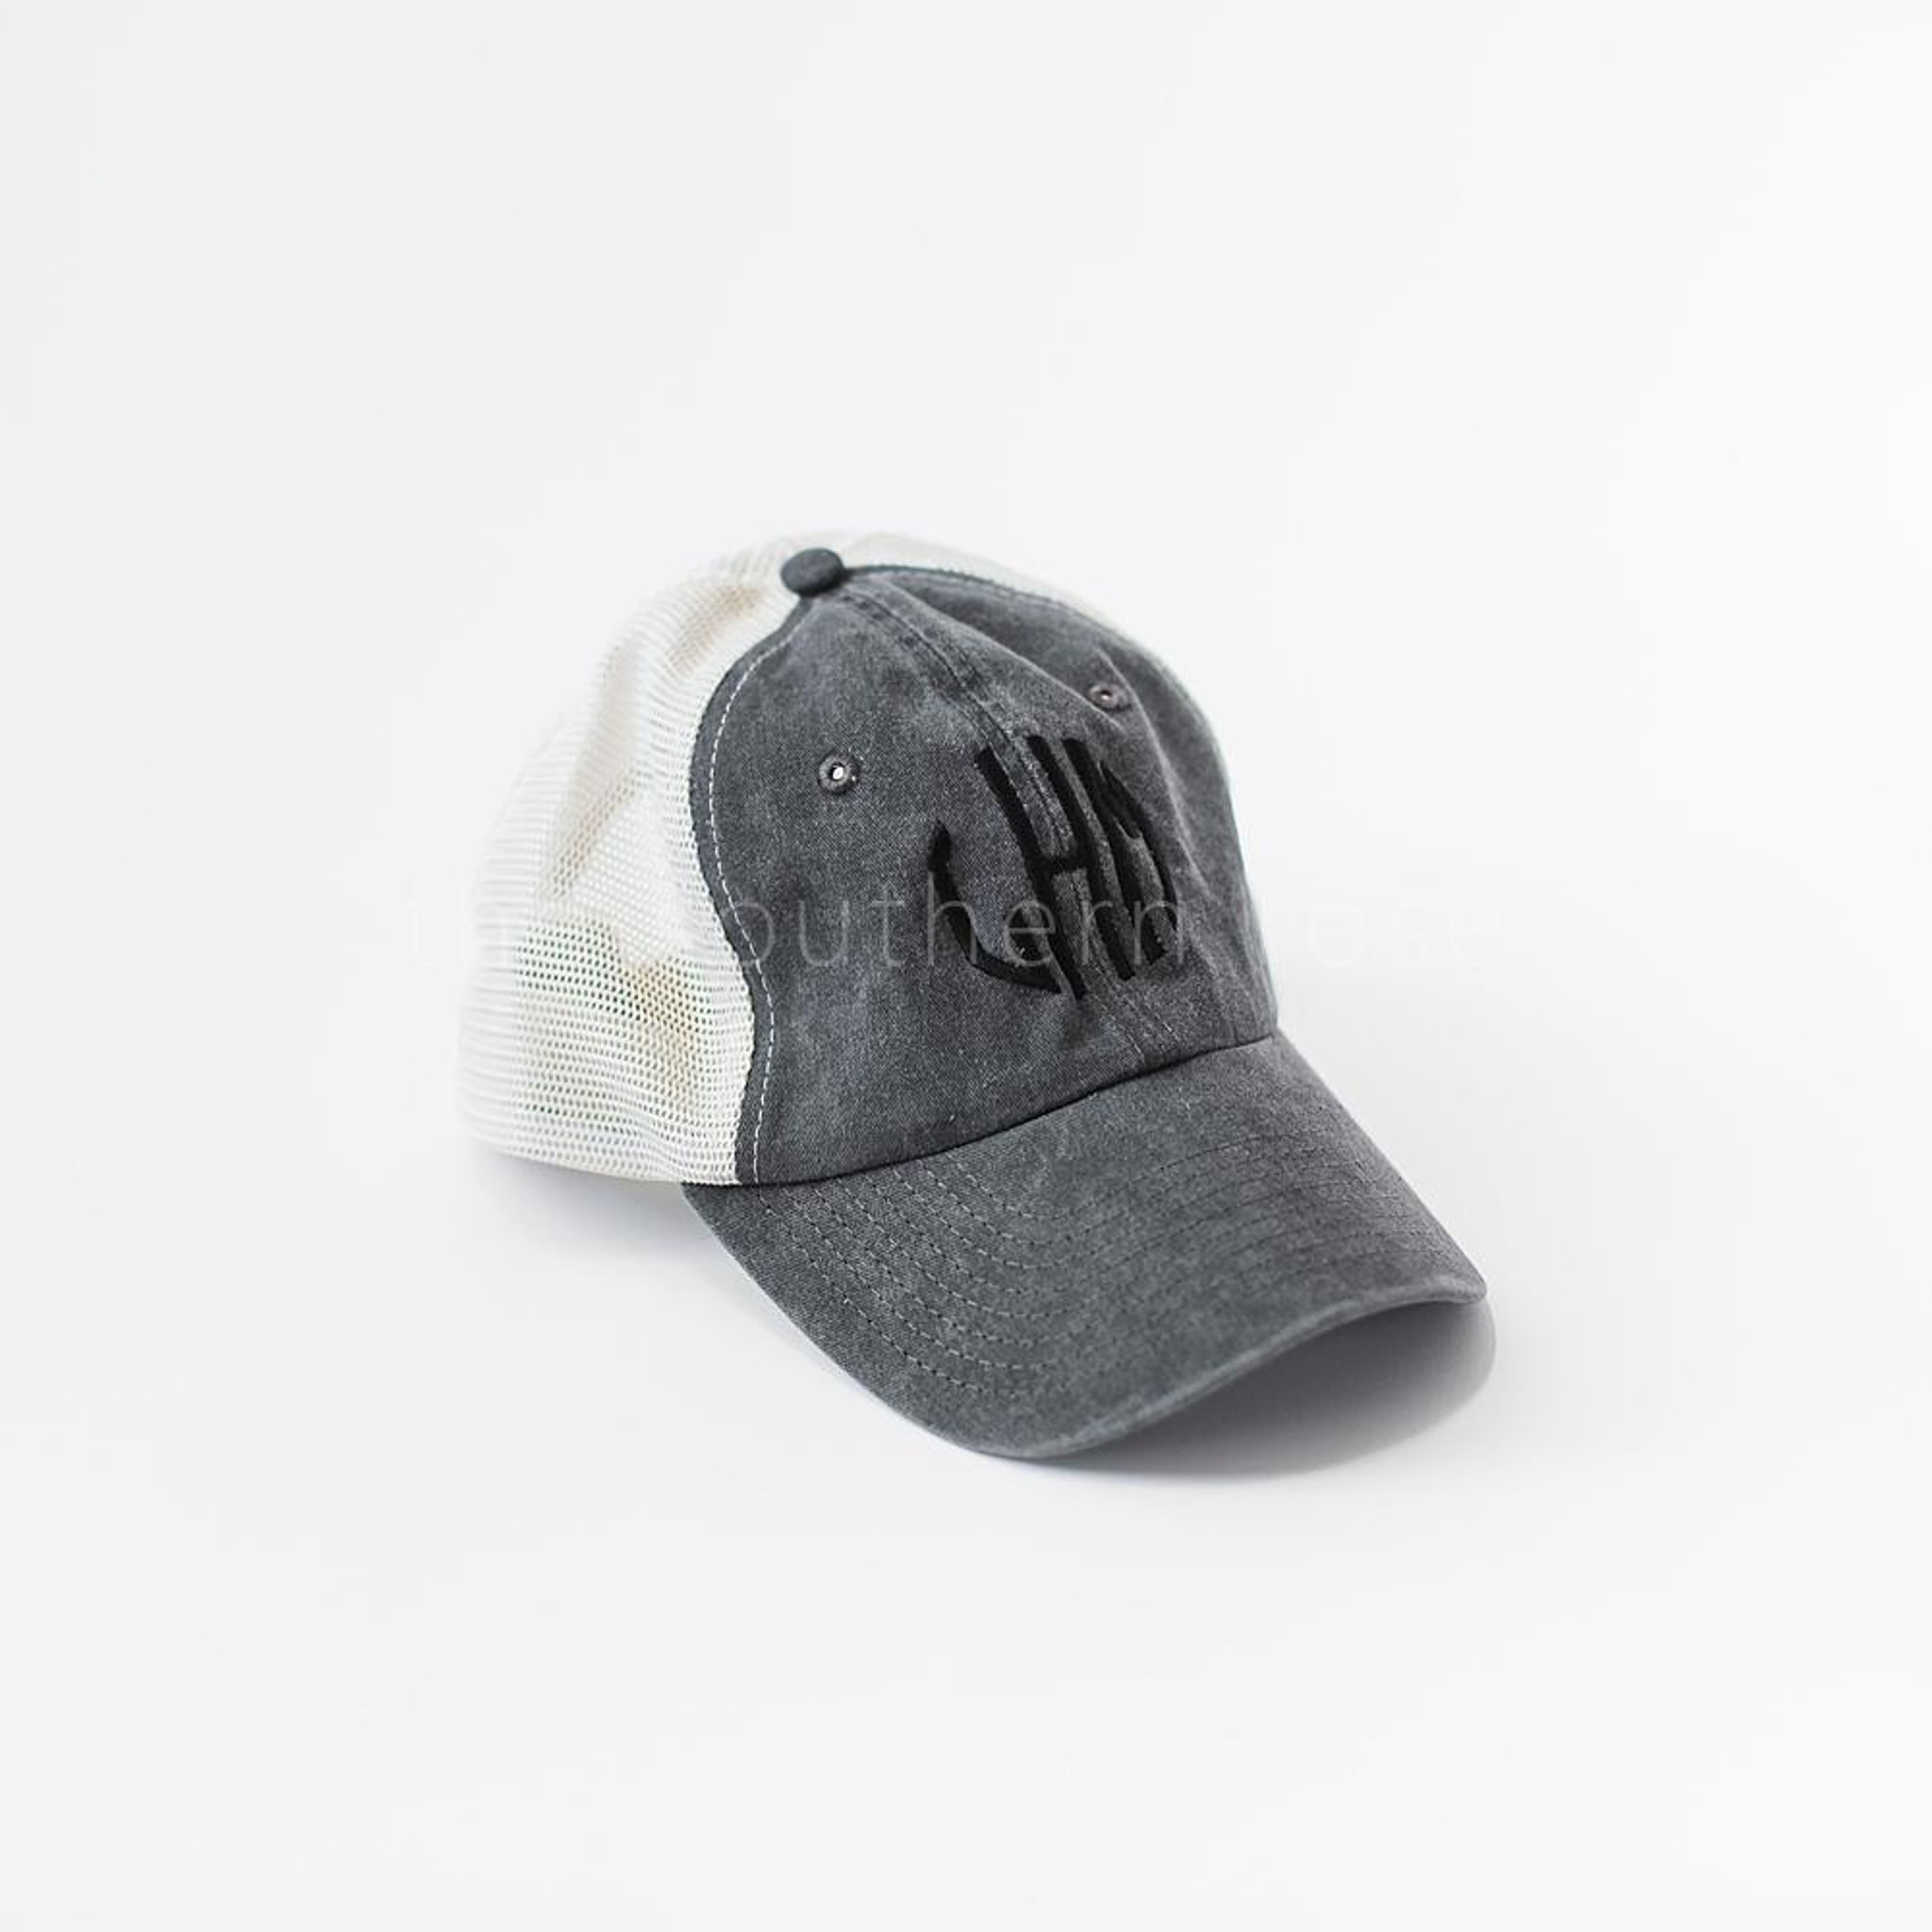 A gray and white trucker hat with black monogrammed letters.